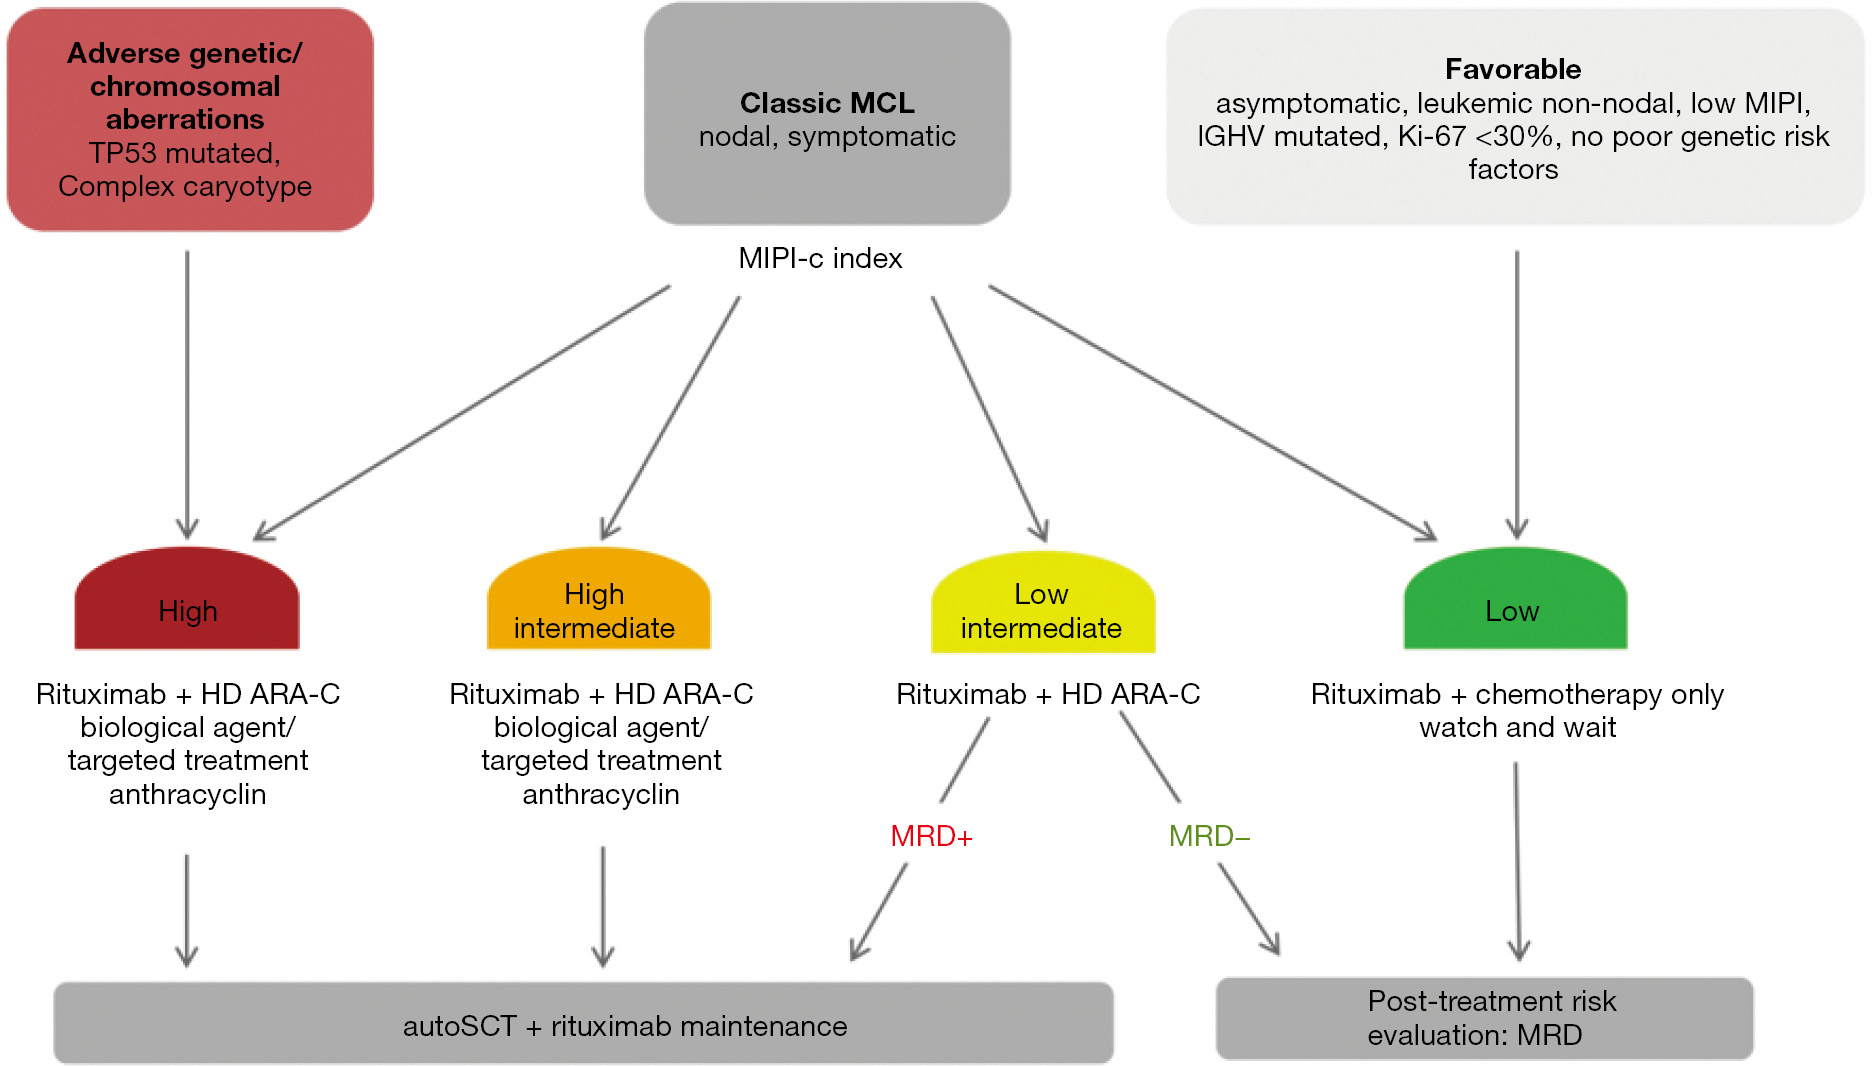 Risk stratification of mantle cell lymphoma (MCL) - Liebers